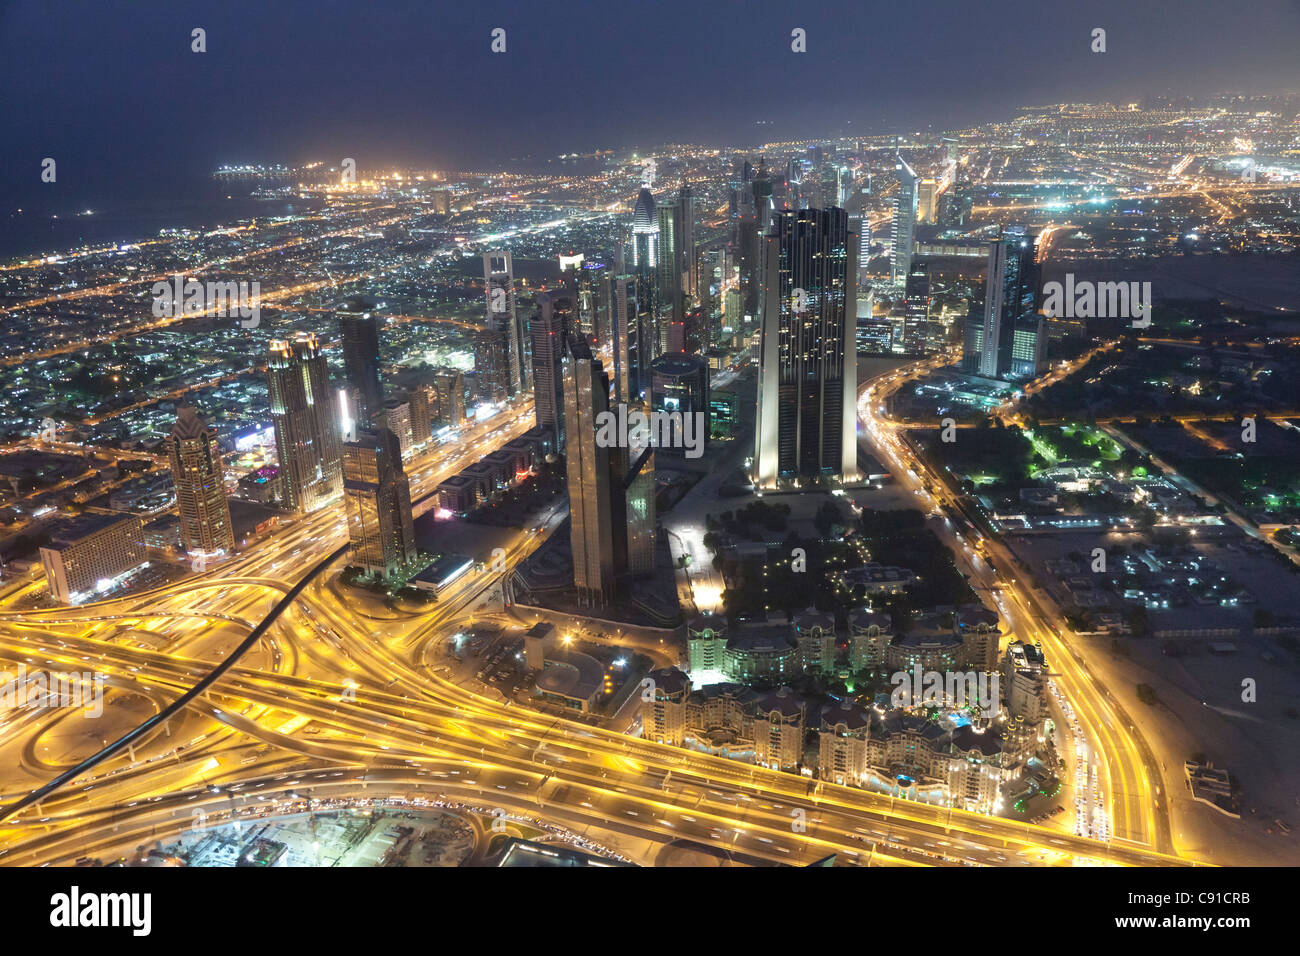 Aerial view of a highway junction in Dubai at nighttime - Stock Image